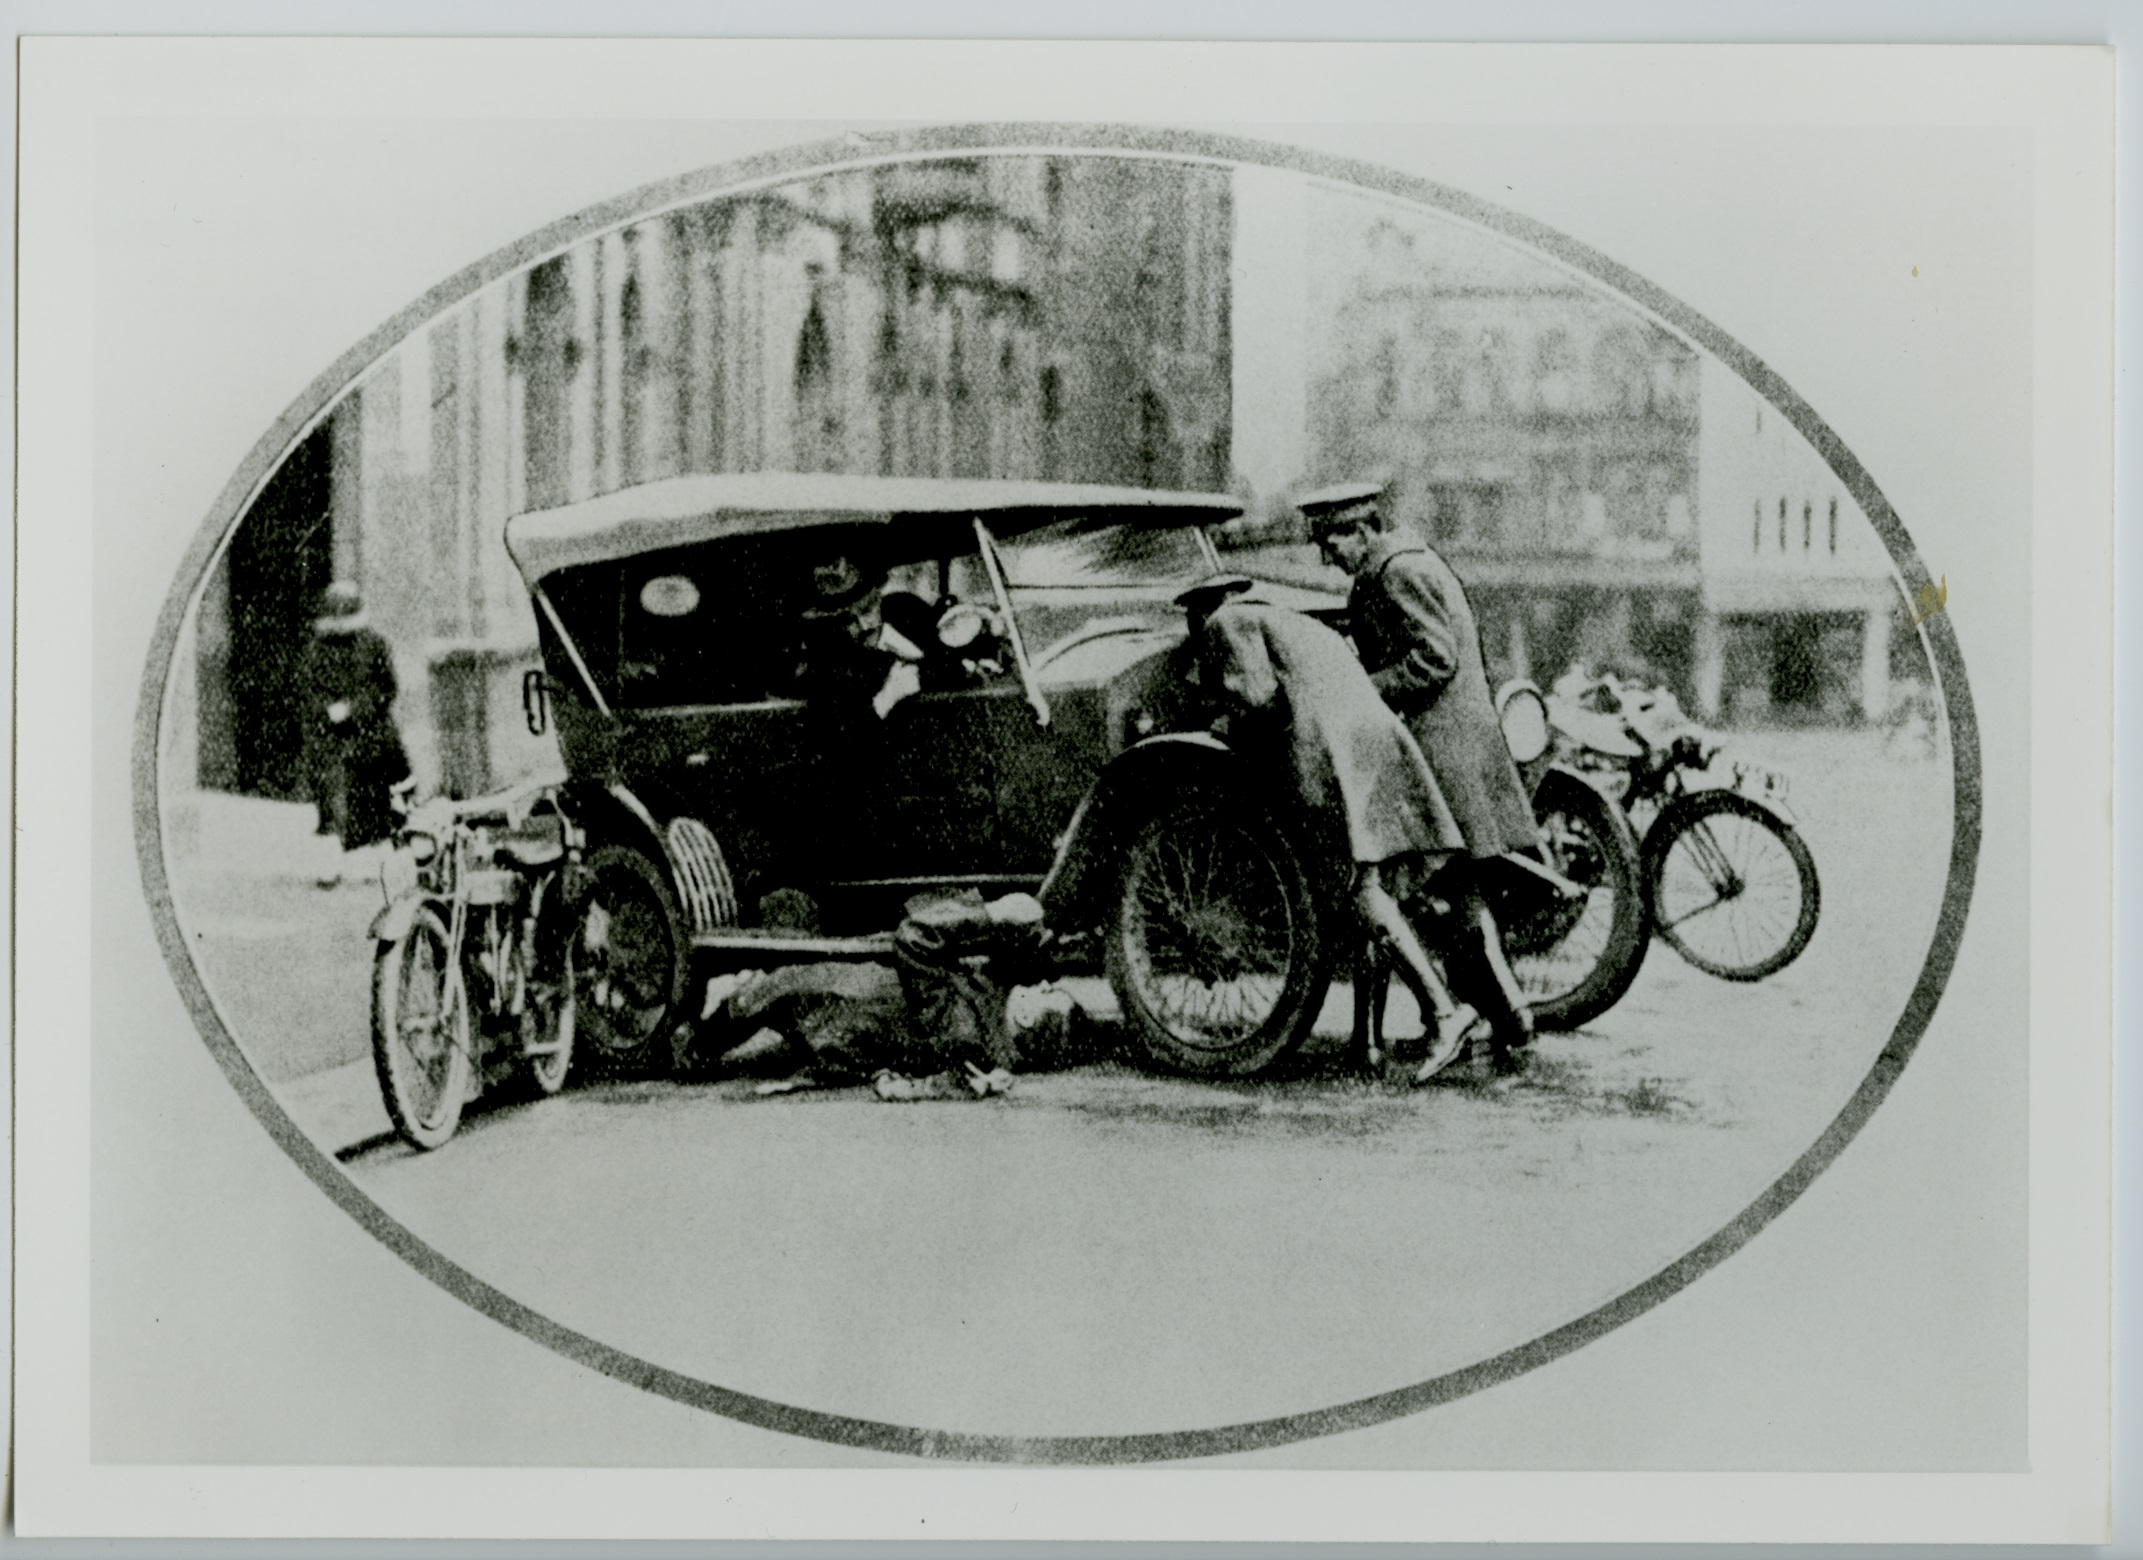 Earliest known image of NRMA road service circa 1920